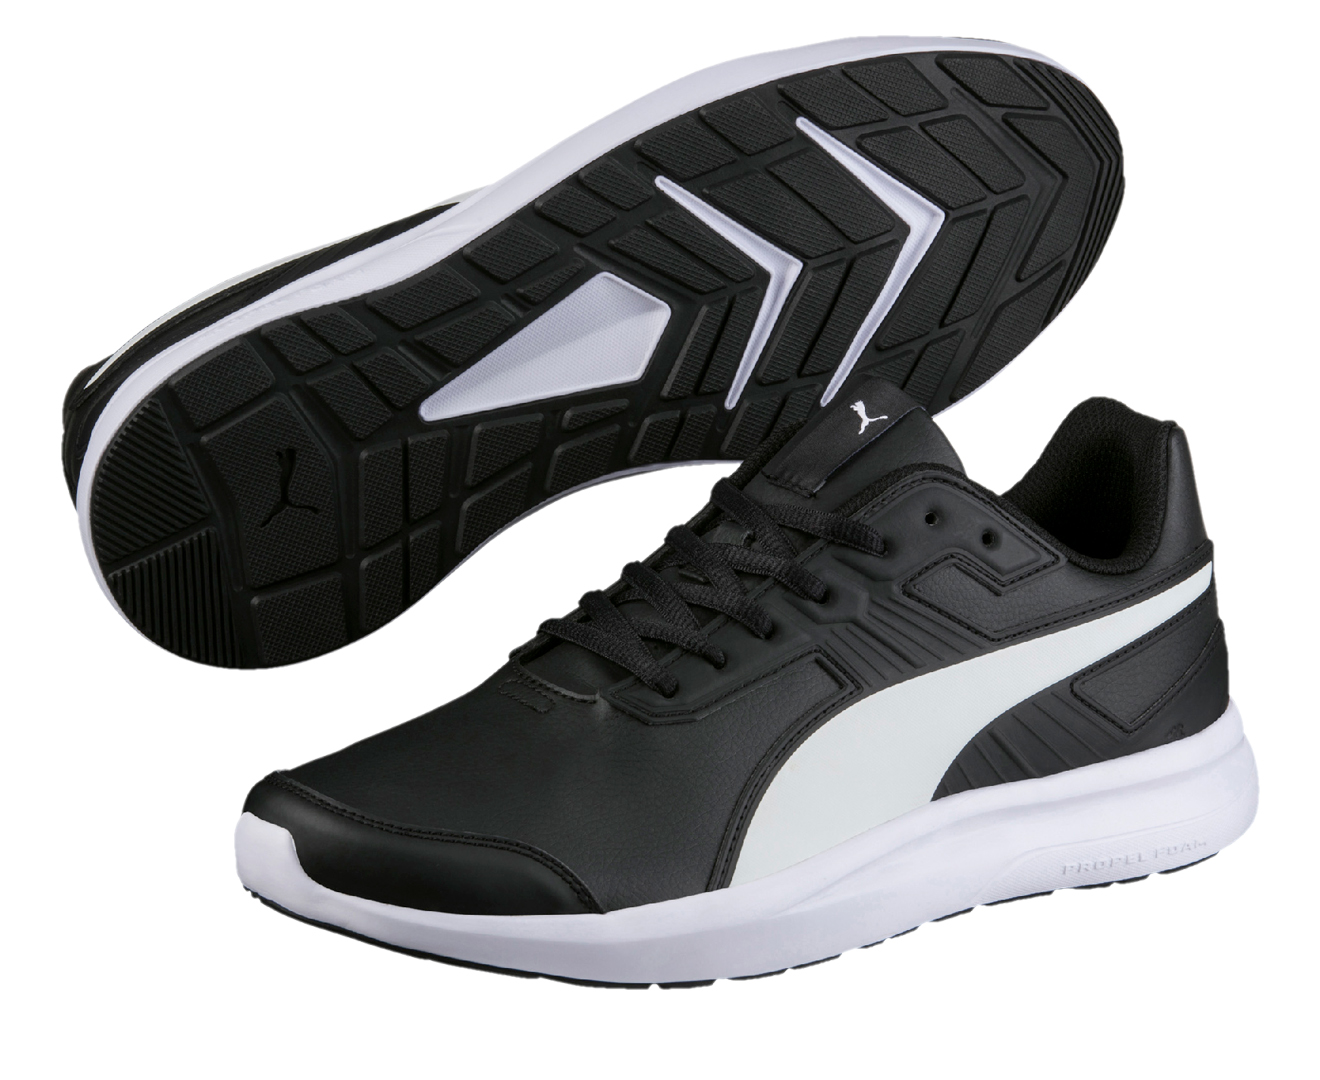 Puma White Going Out Shoes